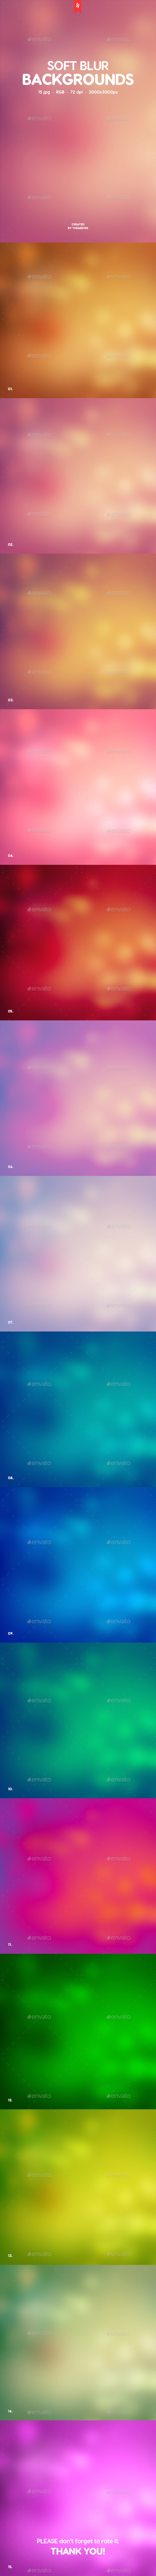 Soft Blur Backgrounds - Backgrounds Graphics